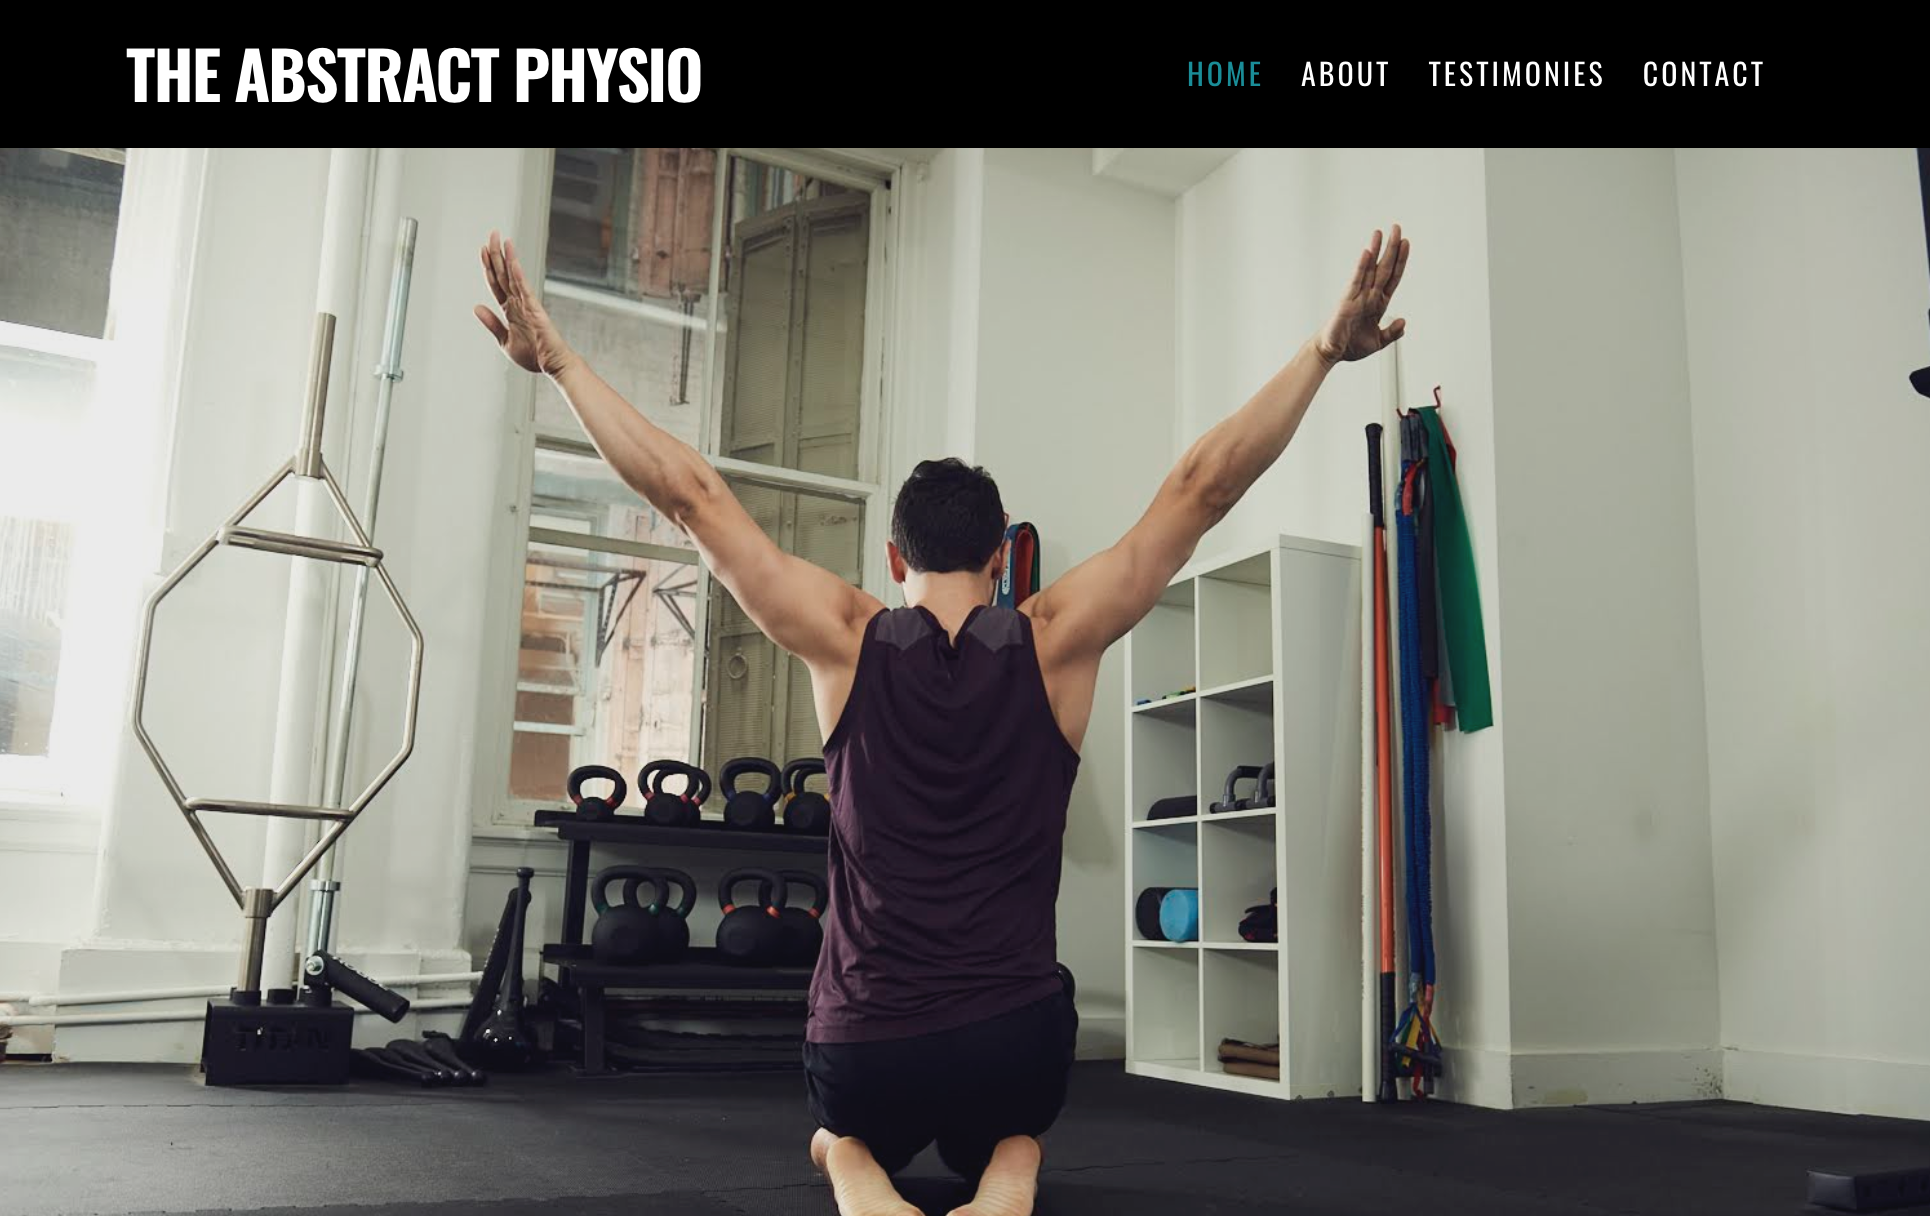 the abstract physio - I worked with Jordan to create a powerful website to showcase his expertise and dedication to his work. The goal was to showcase his skills using strong fonts and a powerful color scheme.